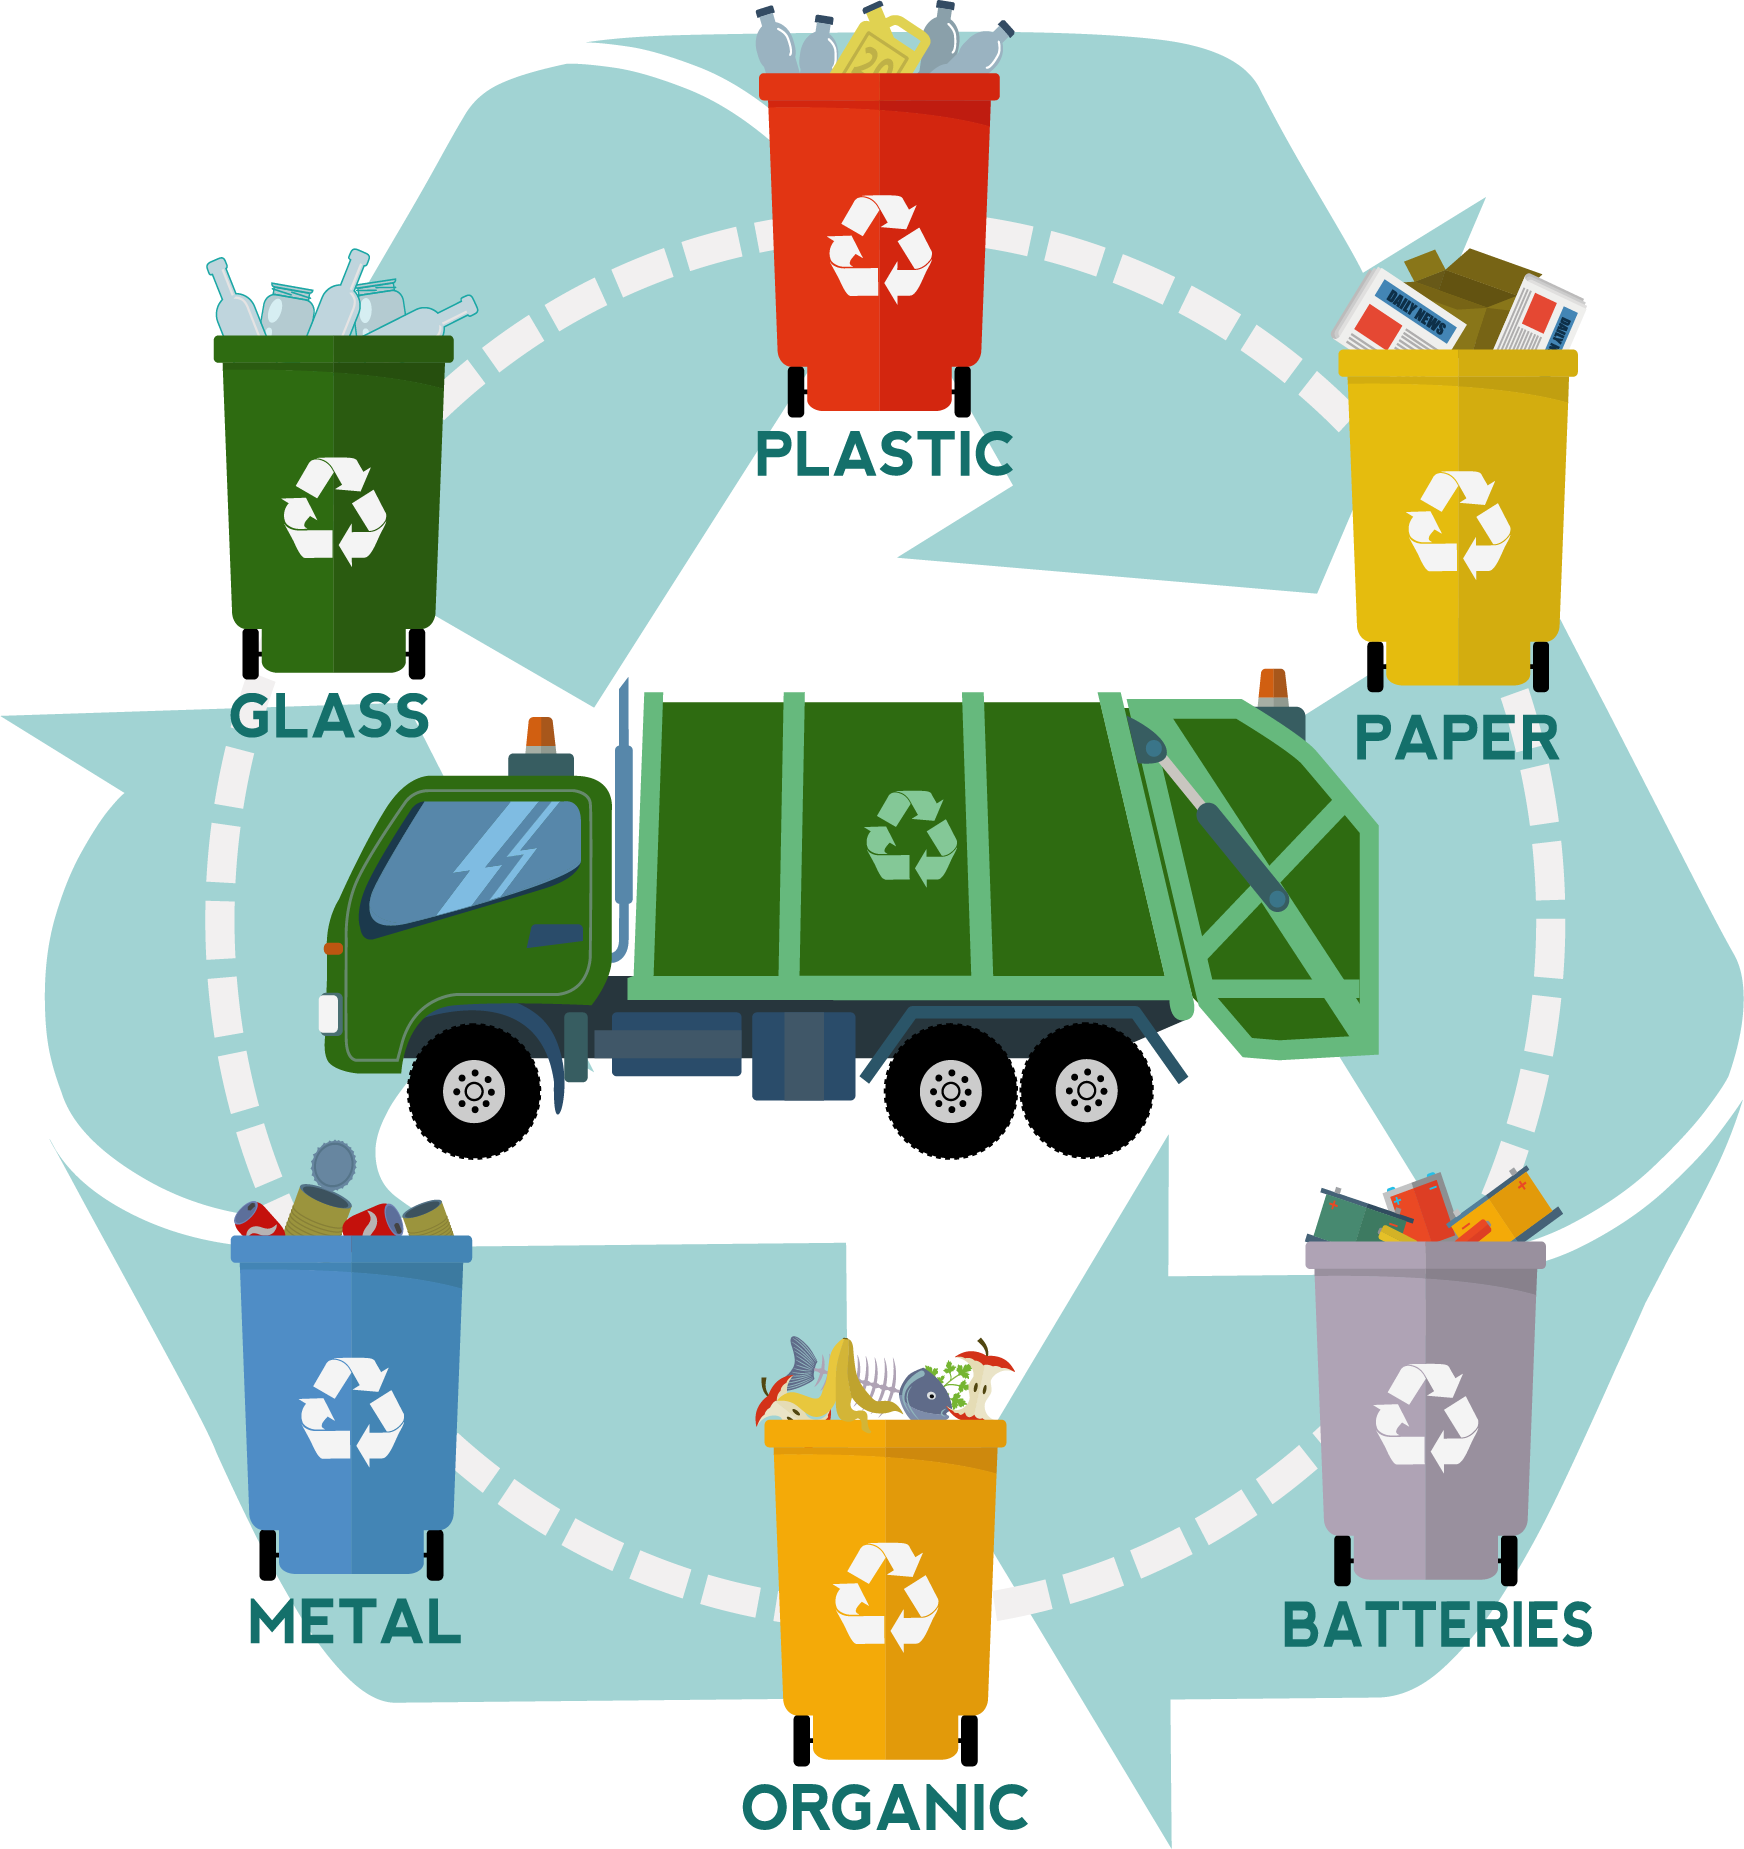 Garbage clipart organic waste. Container recycling compost cycle